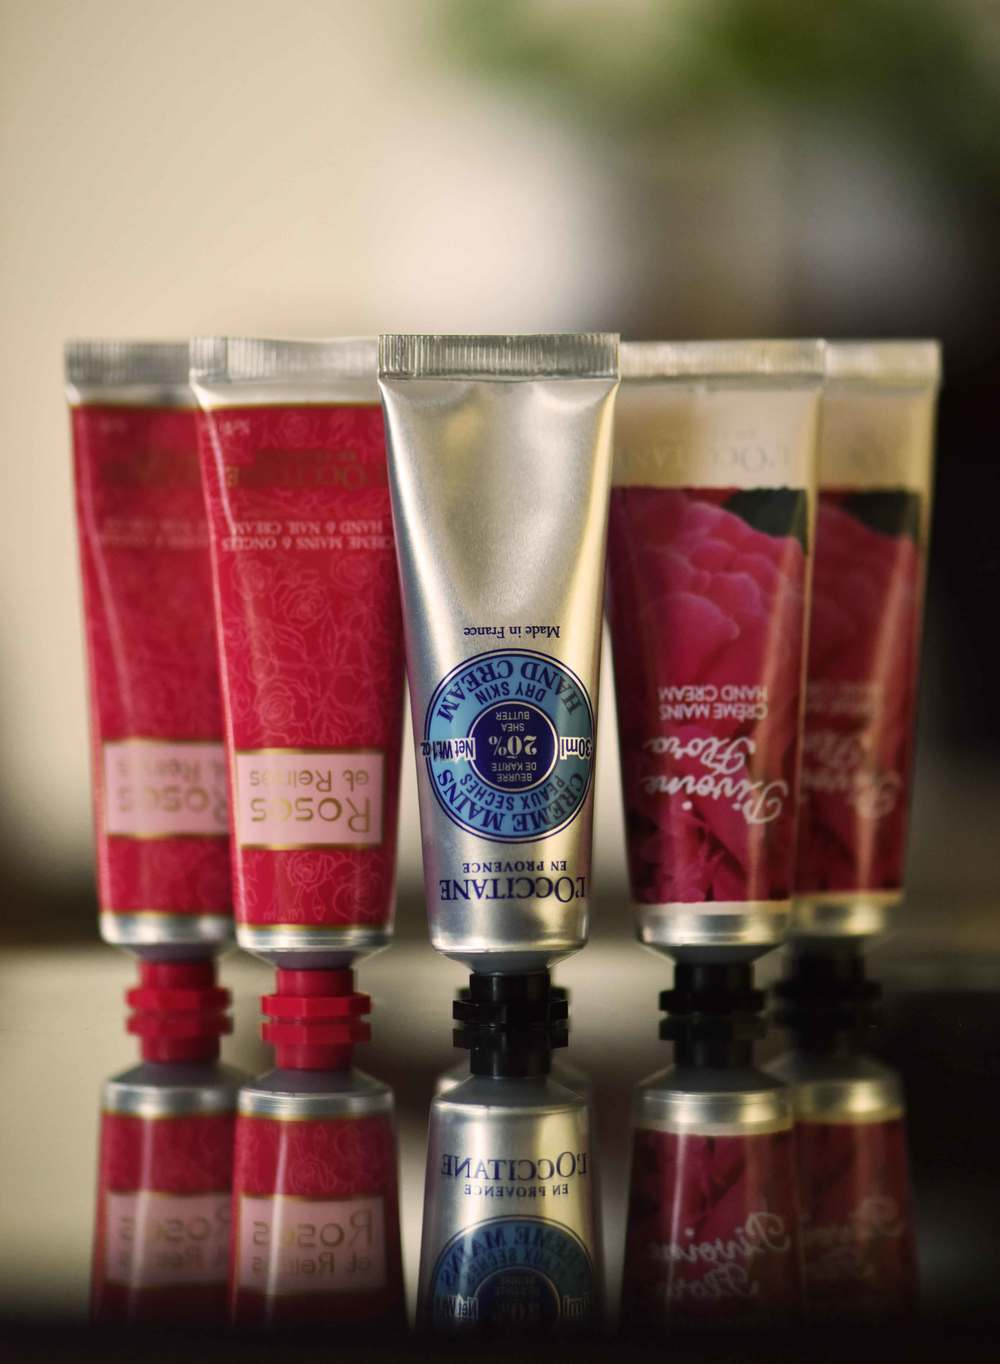 The L'Occitane hand cream set, image©gunjanvirk